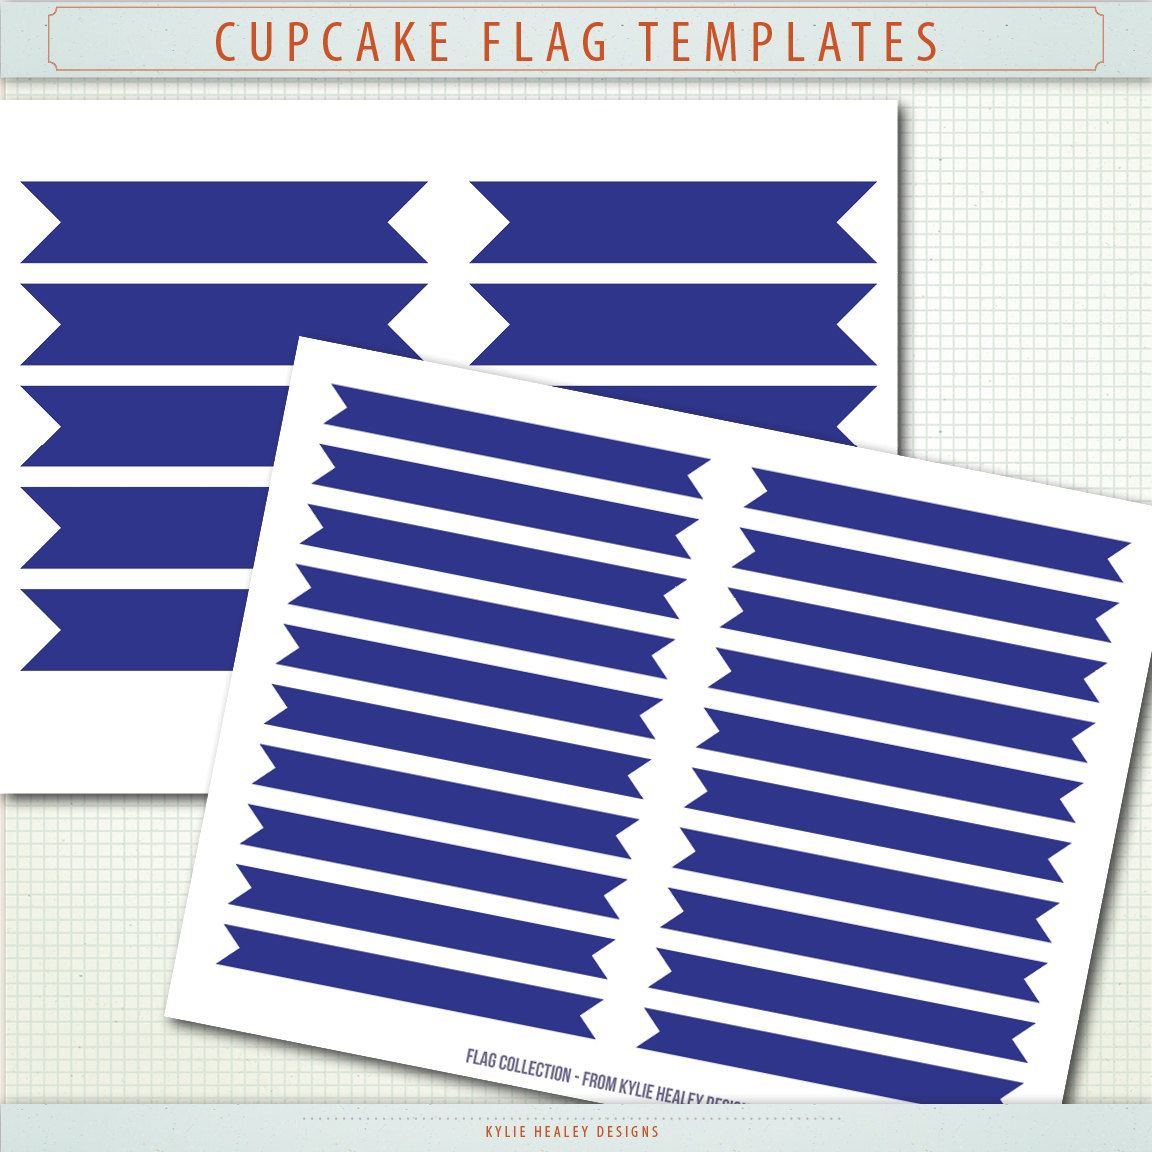 Cupcake Flag Template - Layered Photoshop PSD template - PClip Art ClipArt Scrapbooking CU OK  Instant Digital Download & Printable. $2.50, via Etsy.